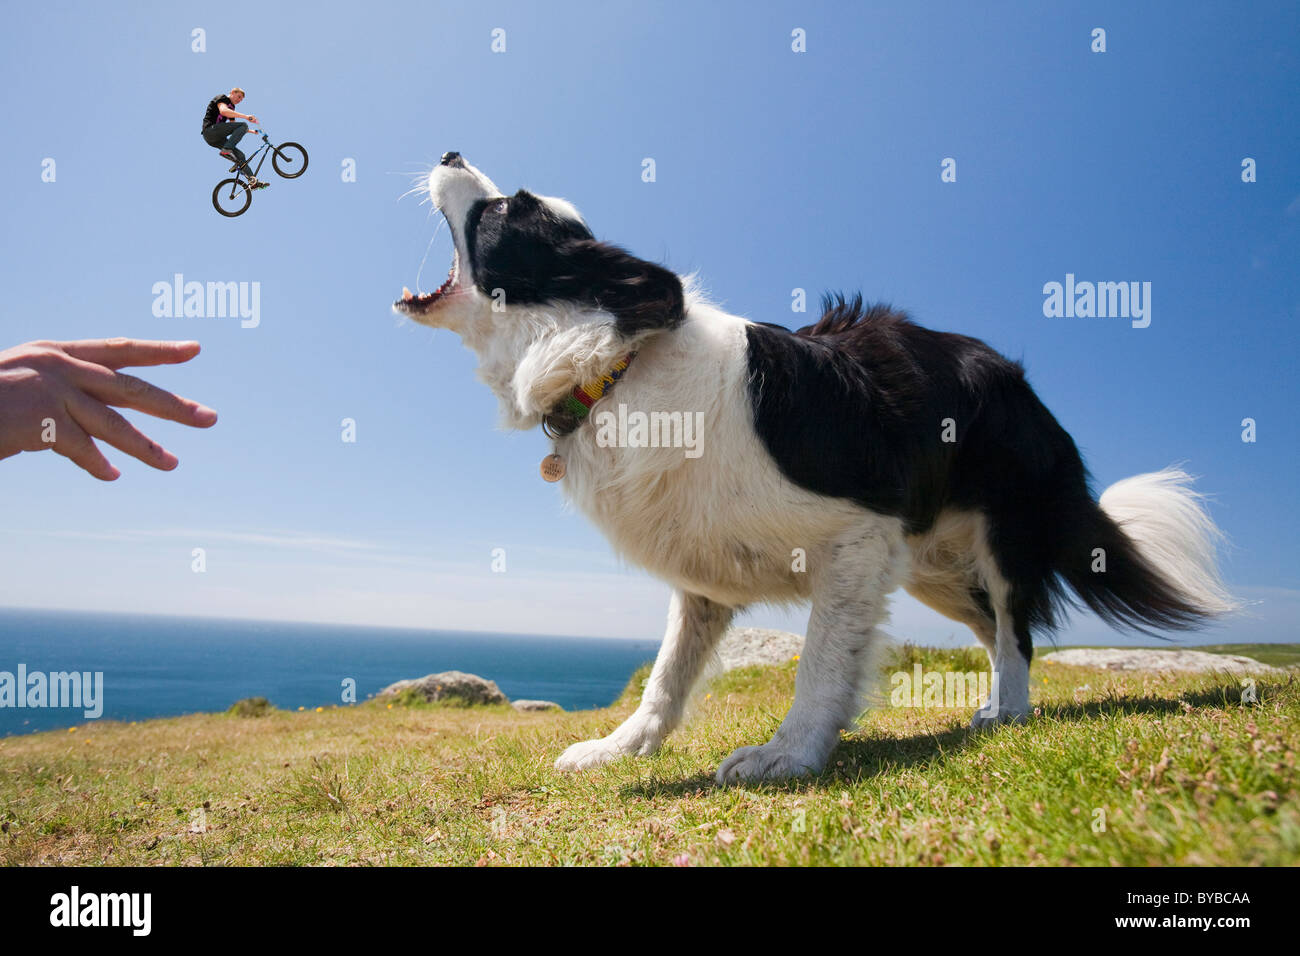 A Border Collie dog waiting for a stick on the Cornish cliff tops near Lands End, with a jumping trick cyclist. - Stock Image